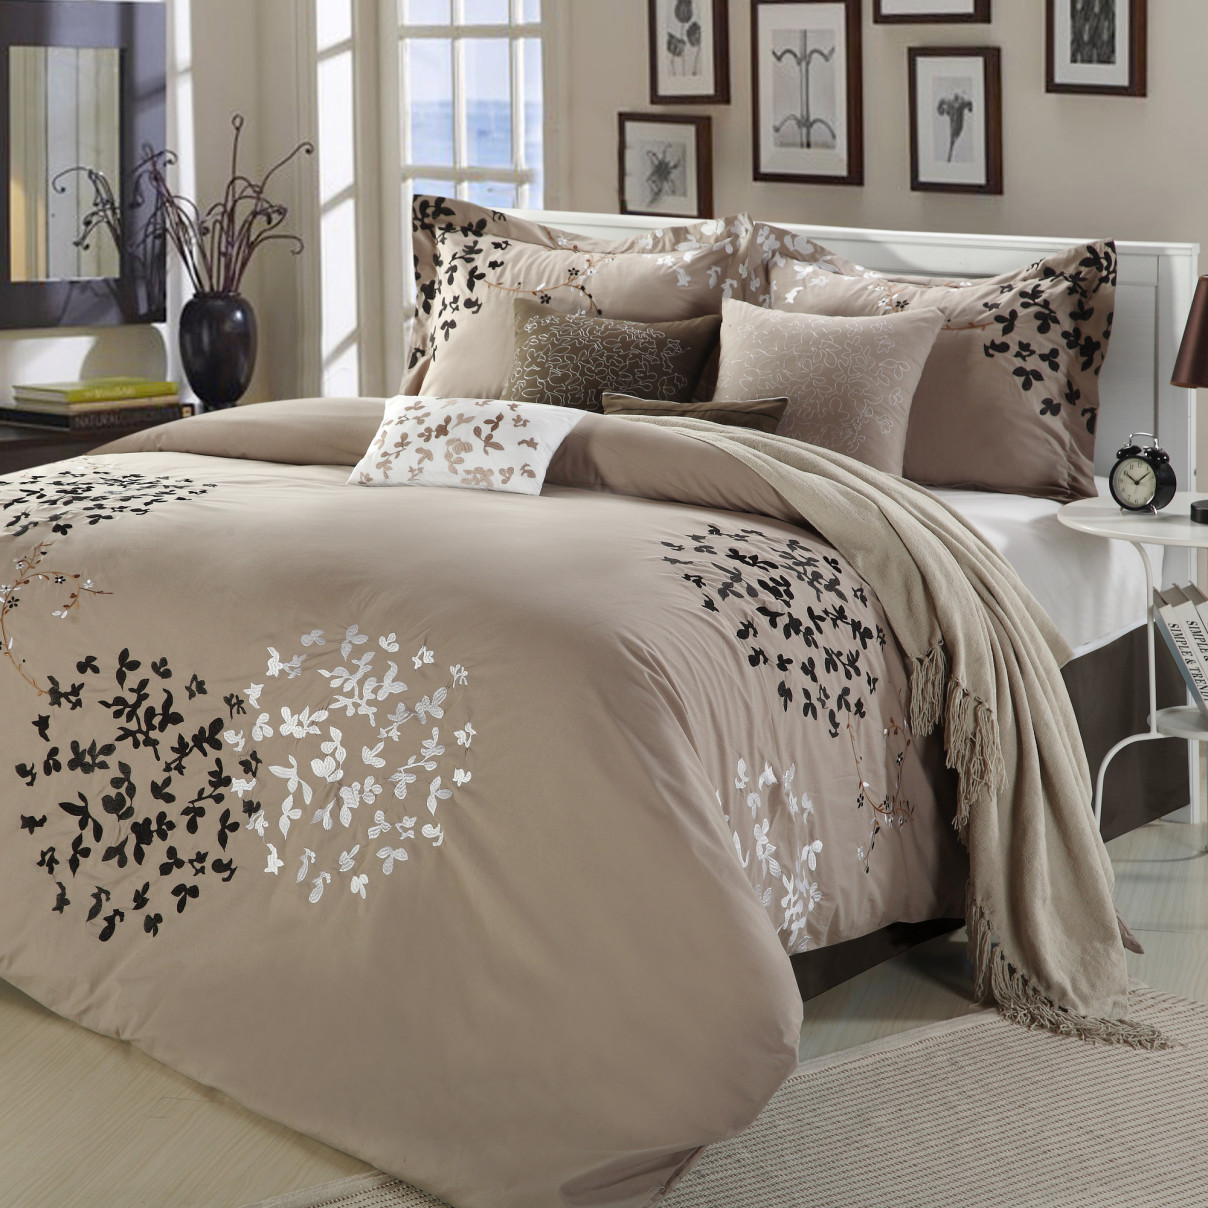 Taupe Comforter Sets Queen | Luxury Comforter Sets | Ruffled Bedding